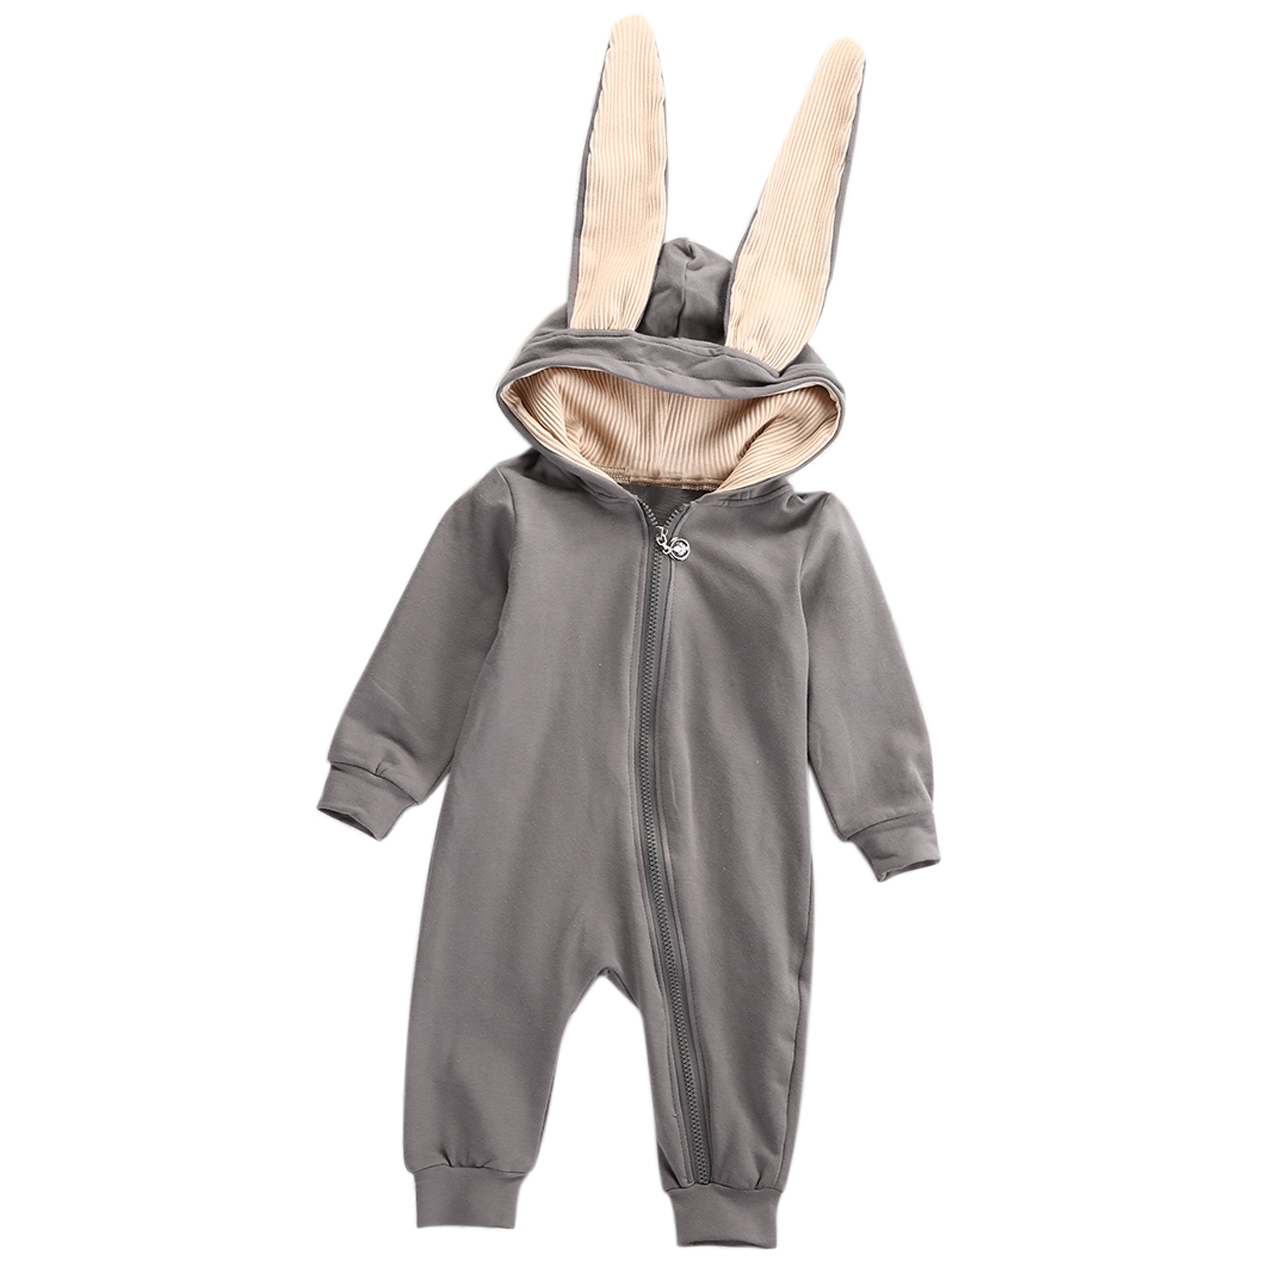 Cute Newborn Infant Baby Girl Boy Clothes 3D Ear Long Sleeve Hooded Romper Jumpsuit Outfits Cotton Warm Zipper Baby Romper